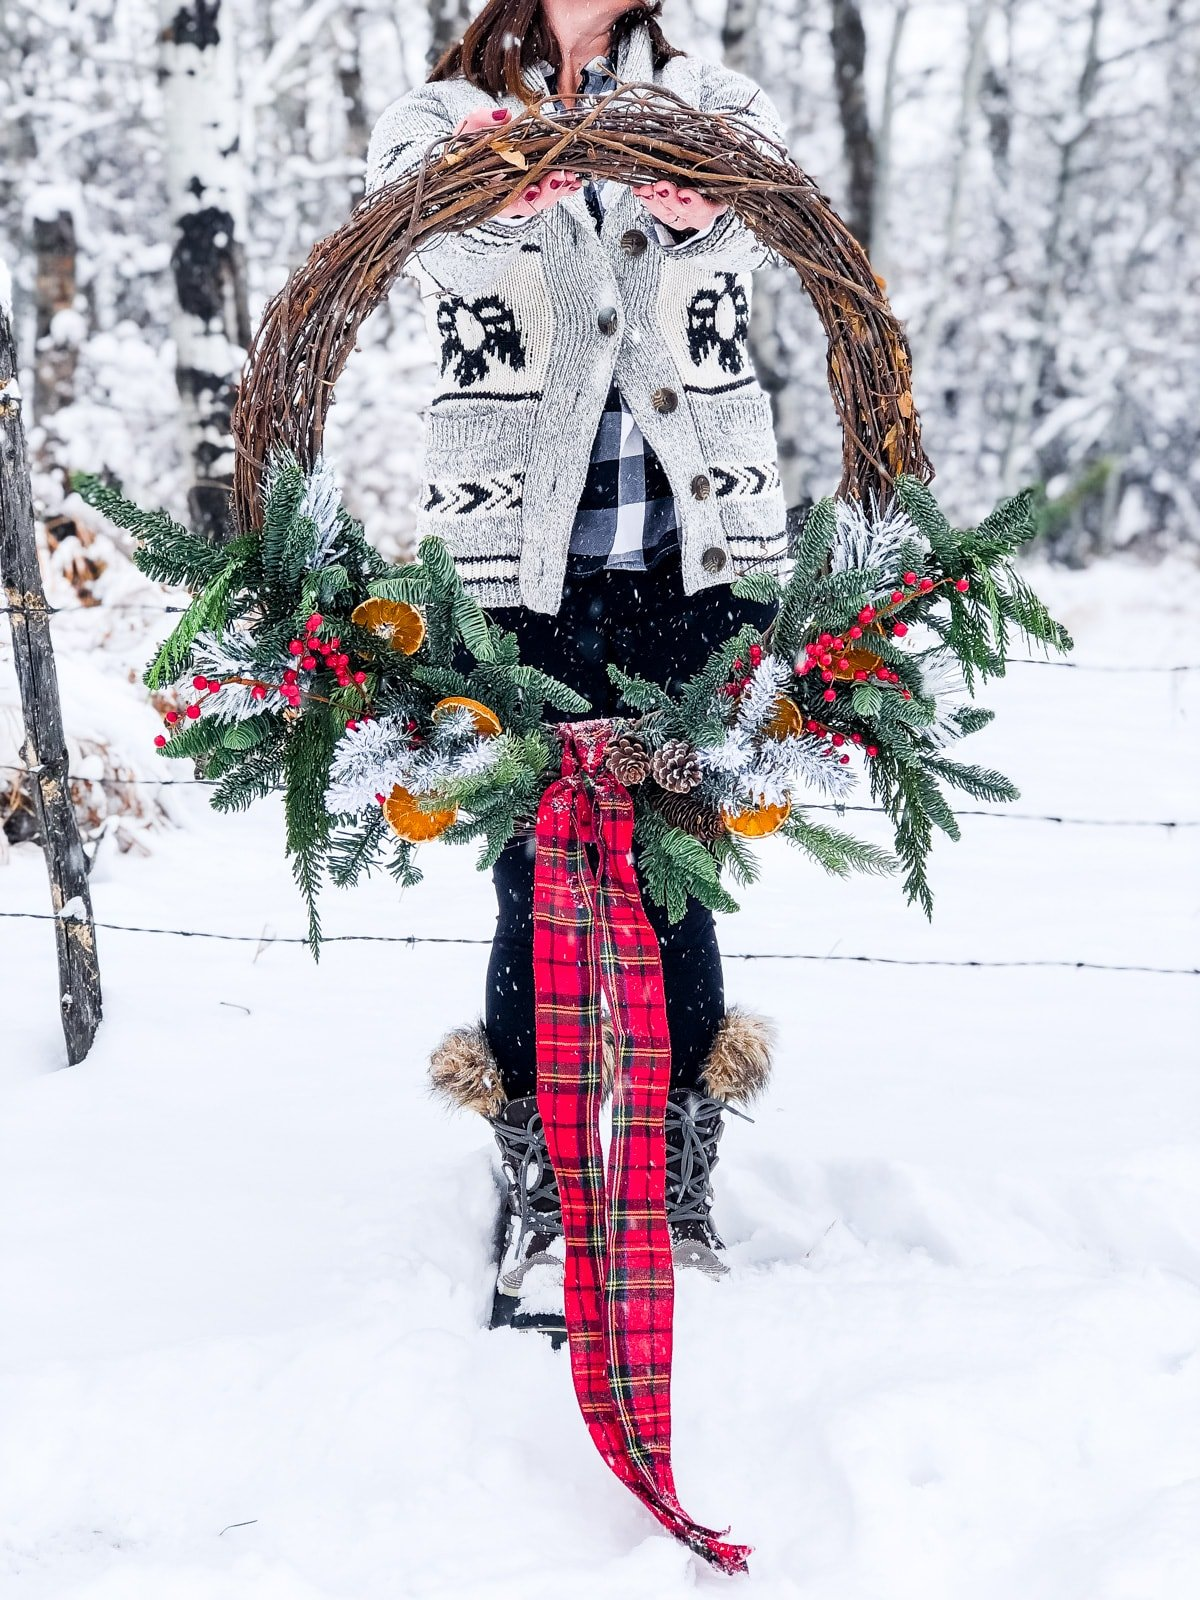 A woman holding a Giant Evergreen Wreath with Plaid and Dried Oranges